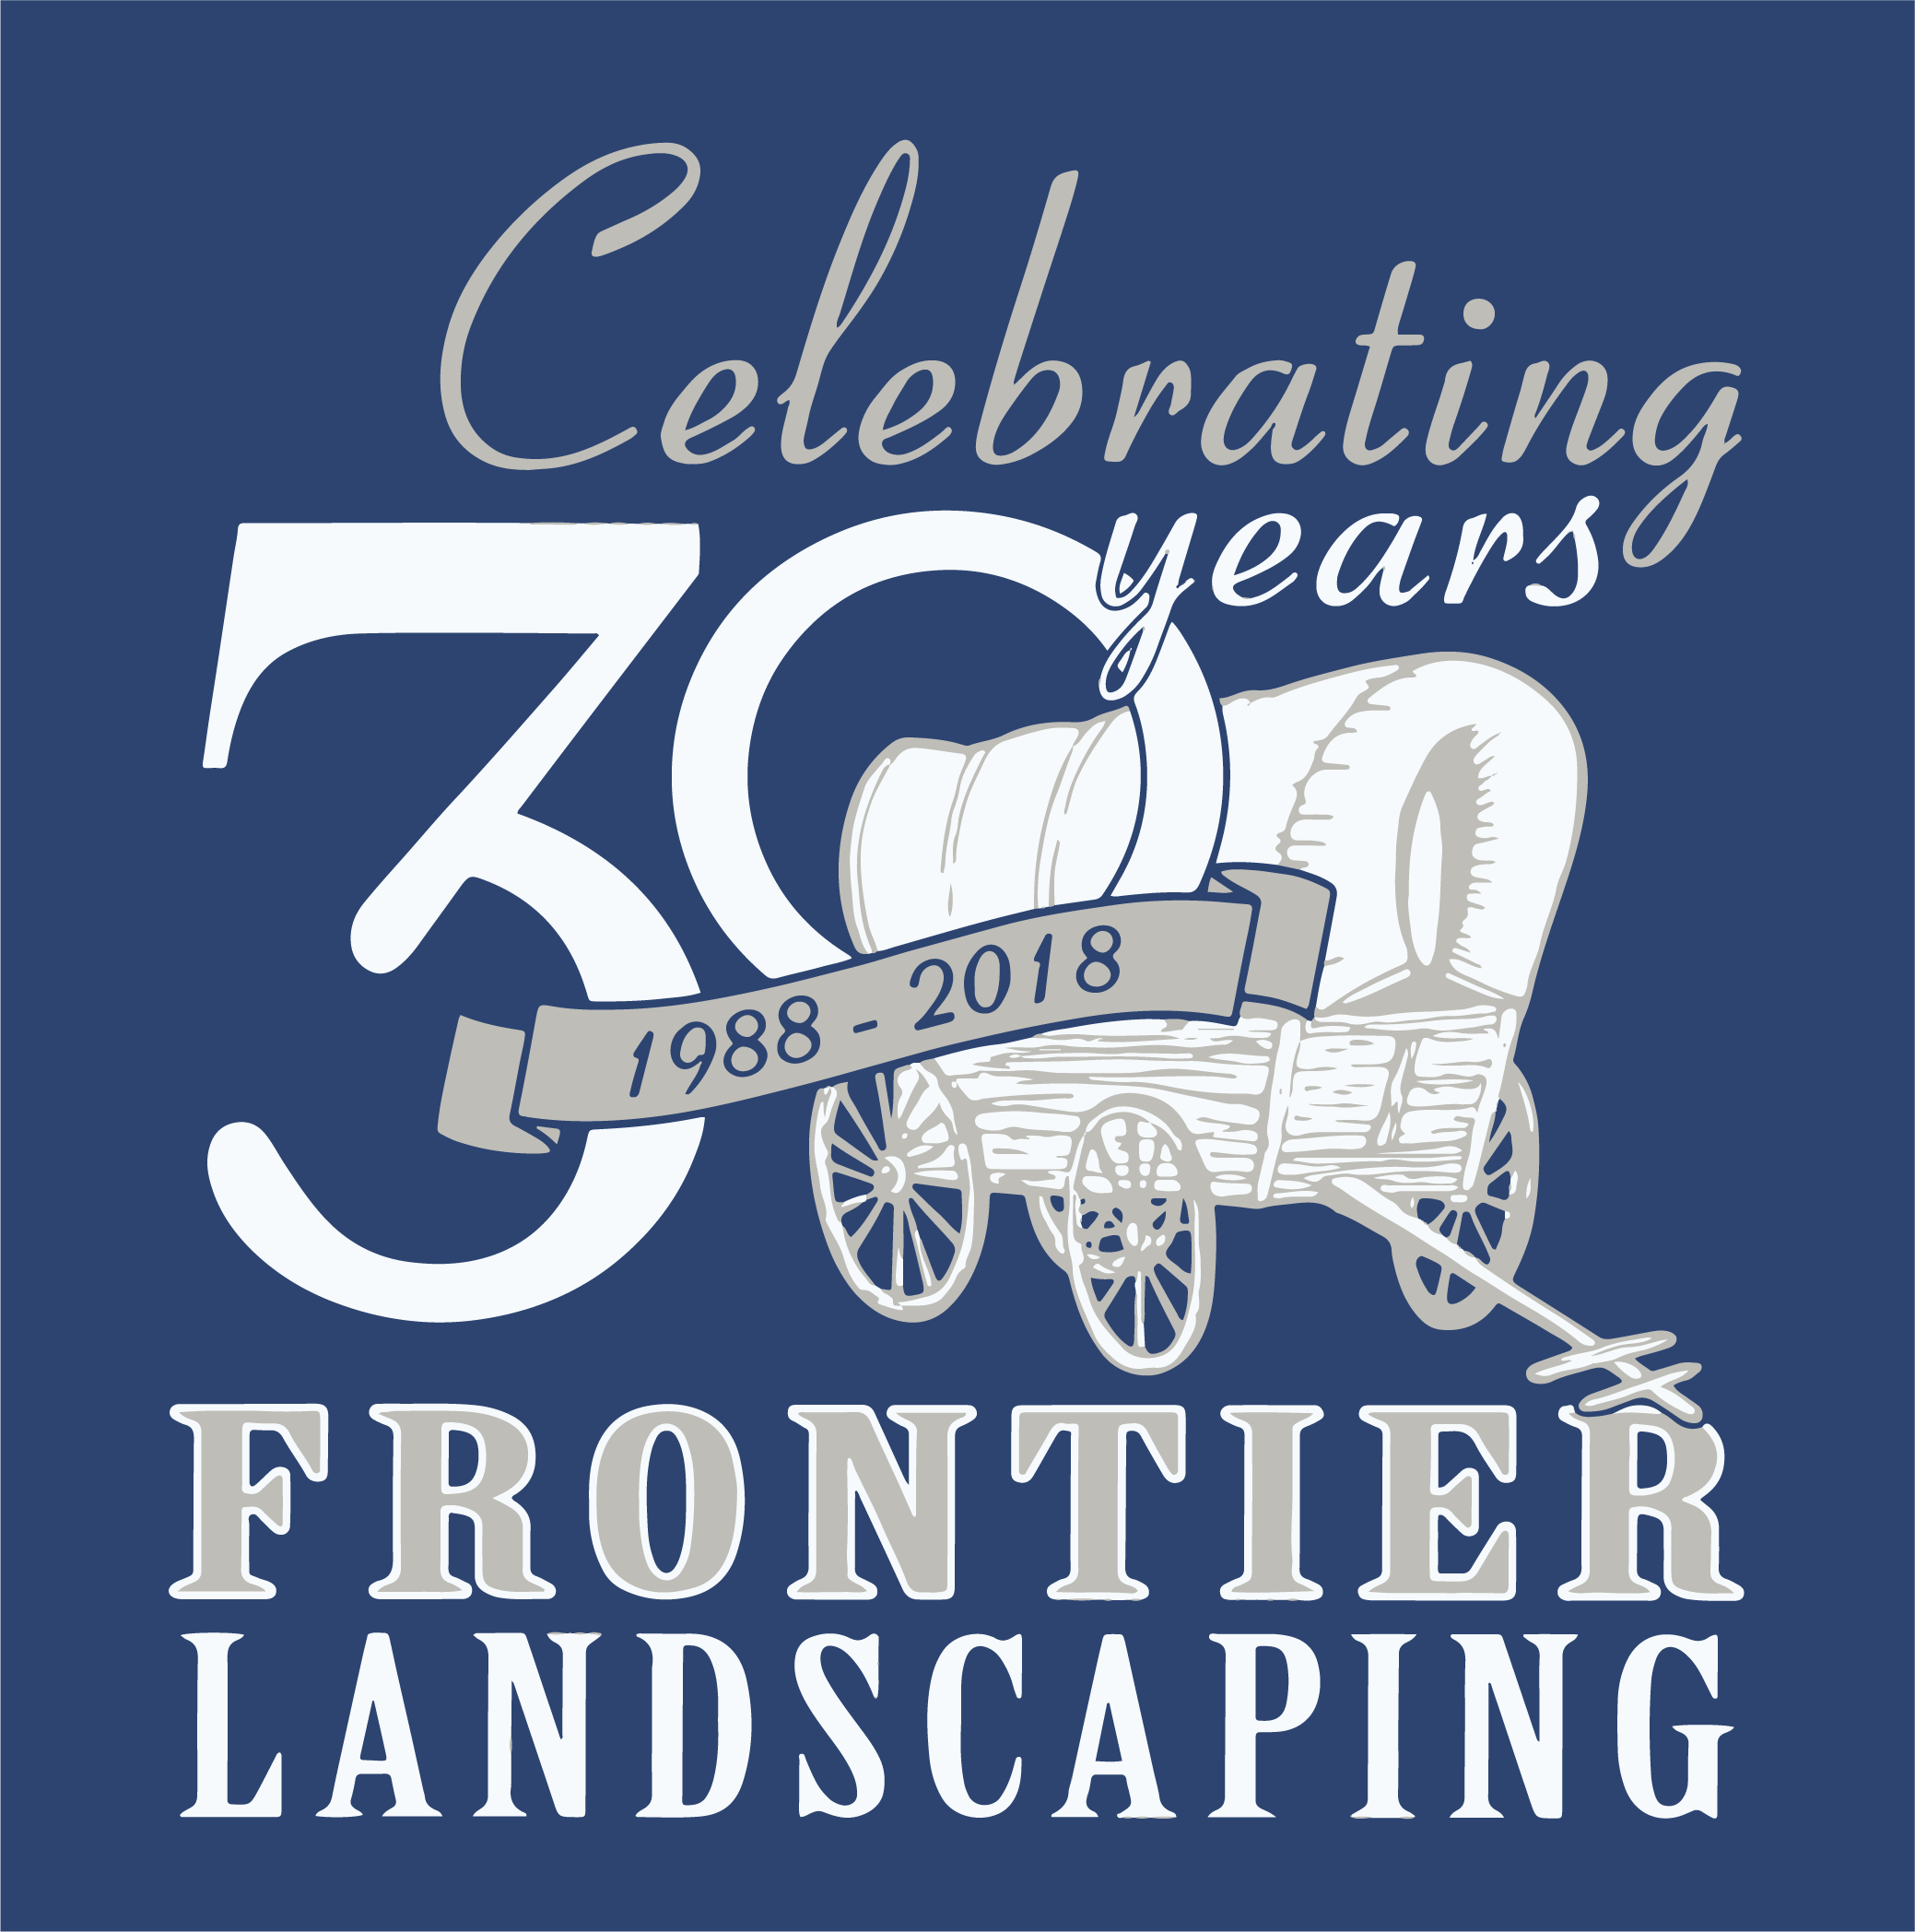 Frontier Landscaping, celebrating 30 years of landscape design and landscape maintenance.